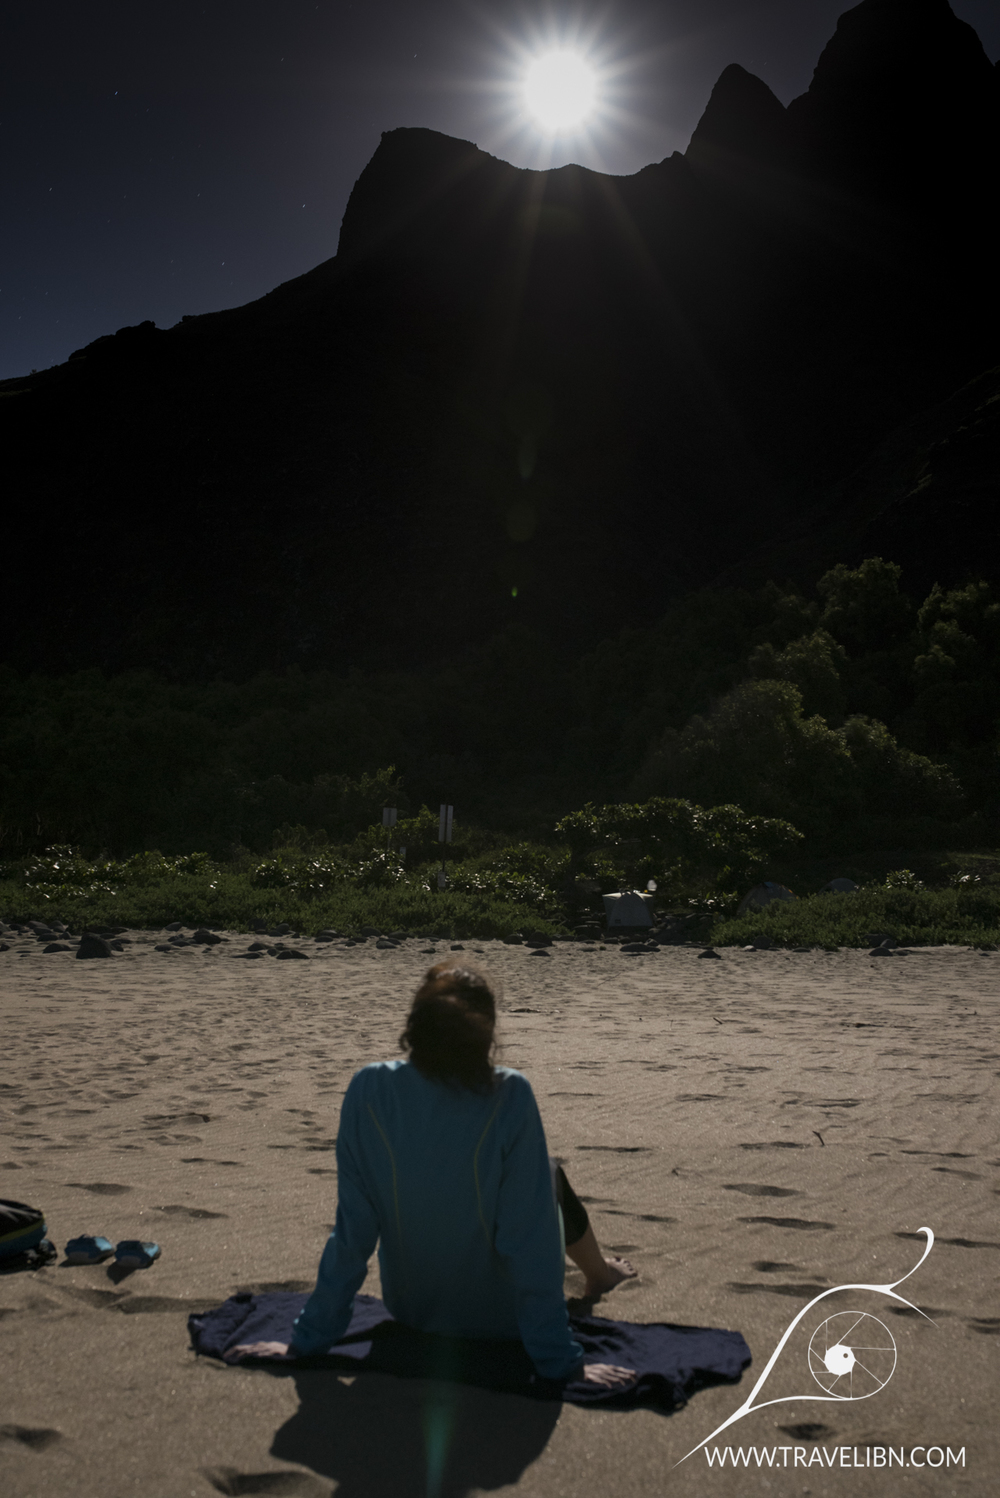 Moon Kalalau Valley.jpg